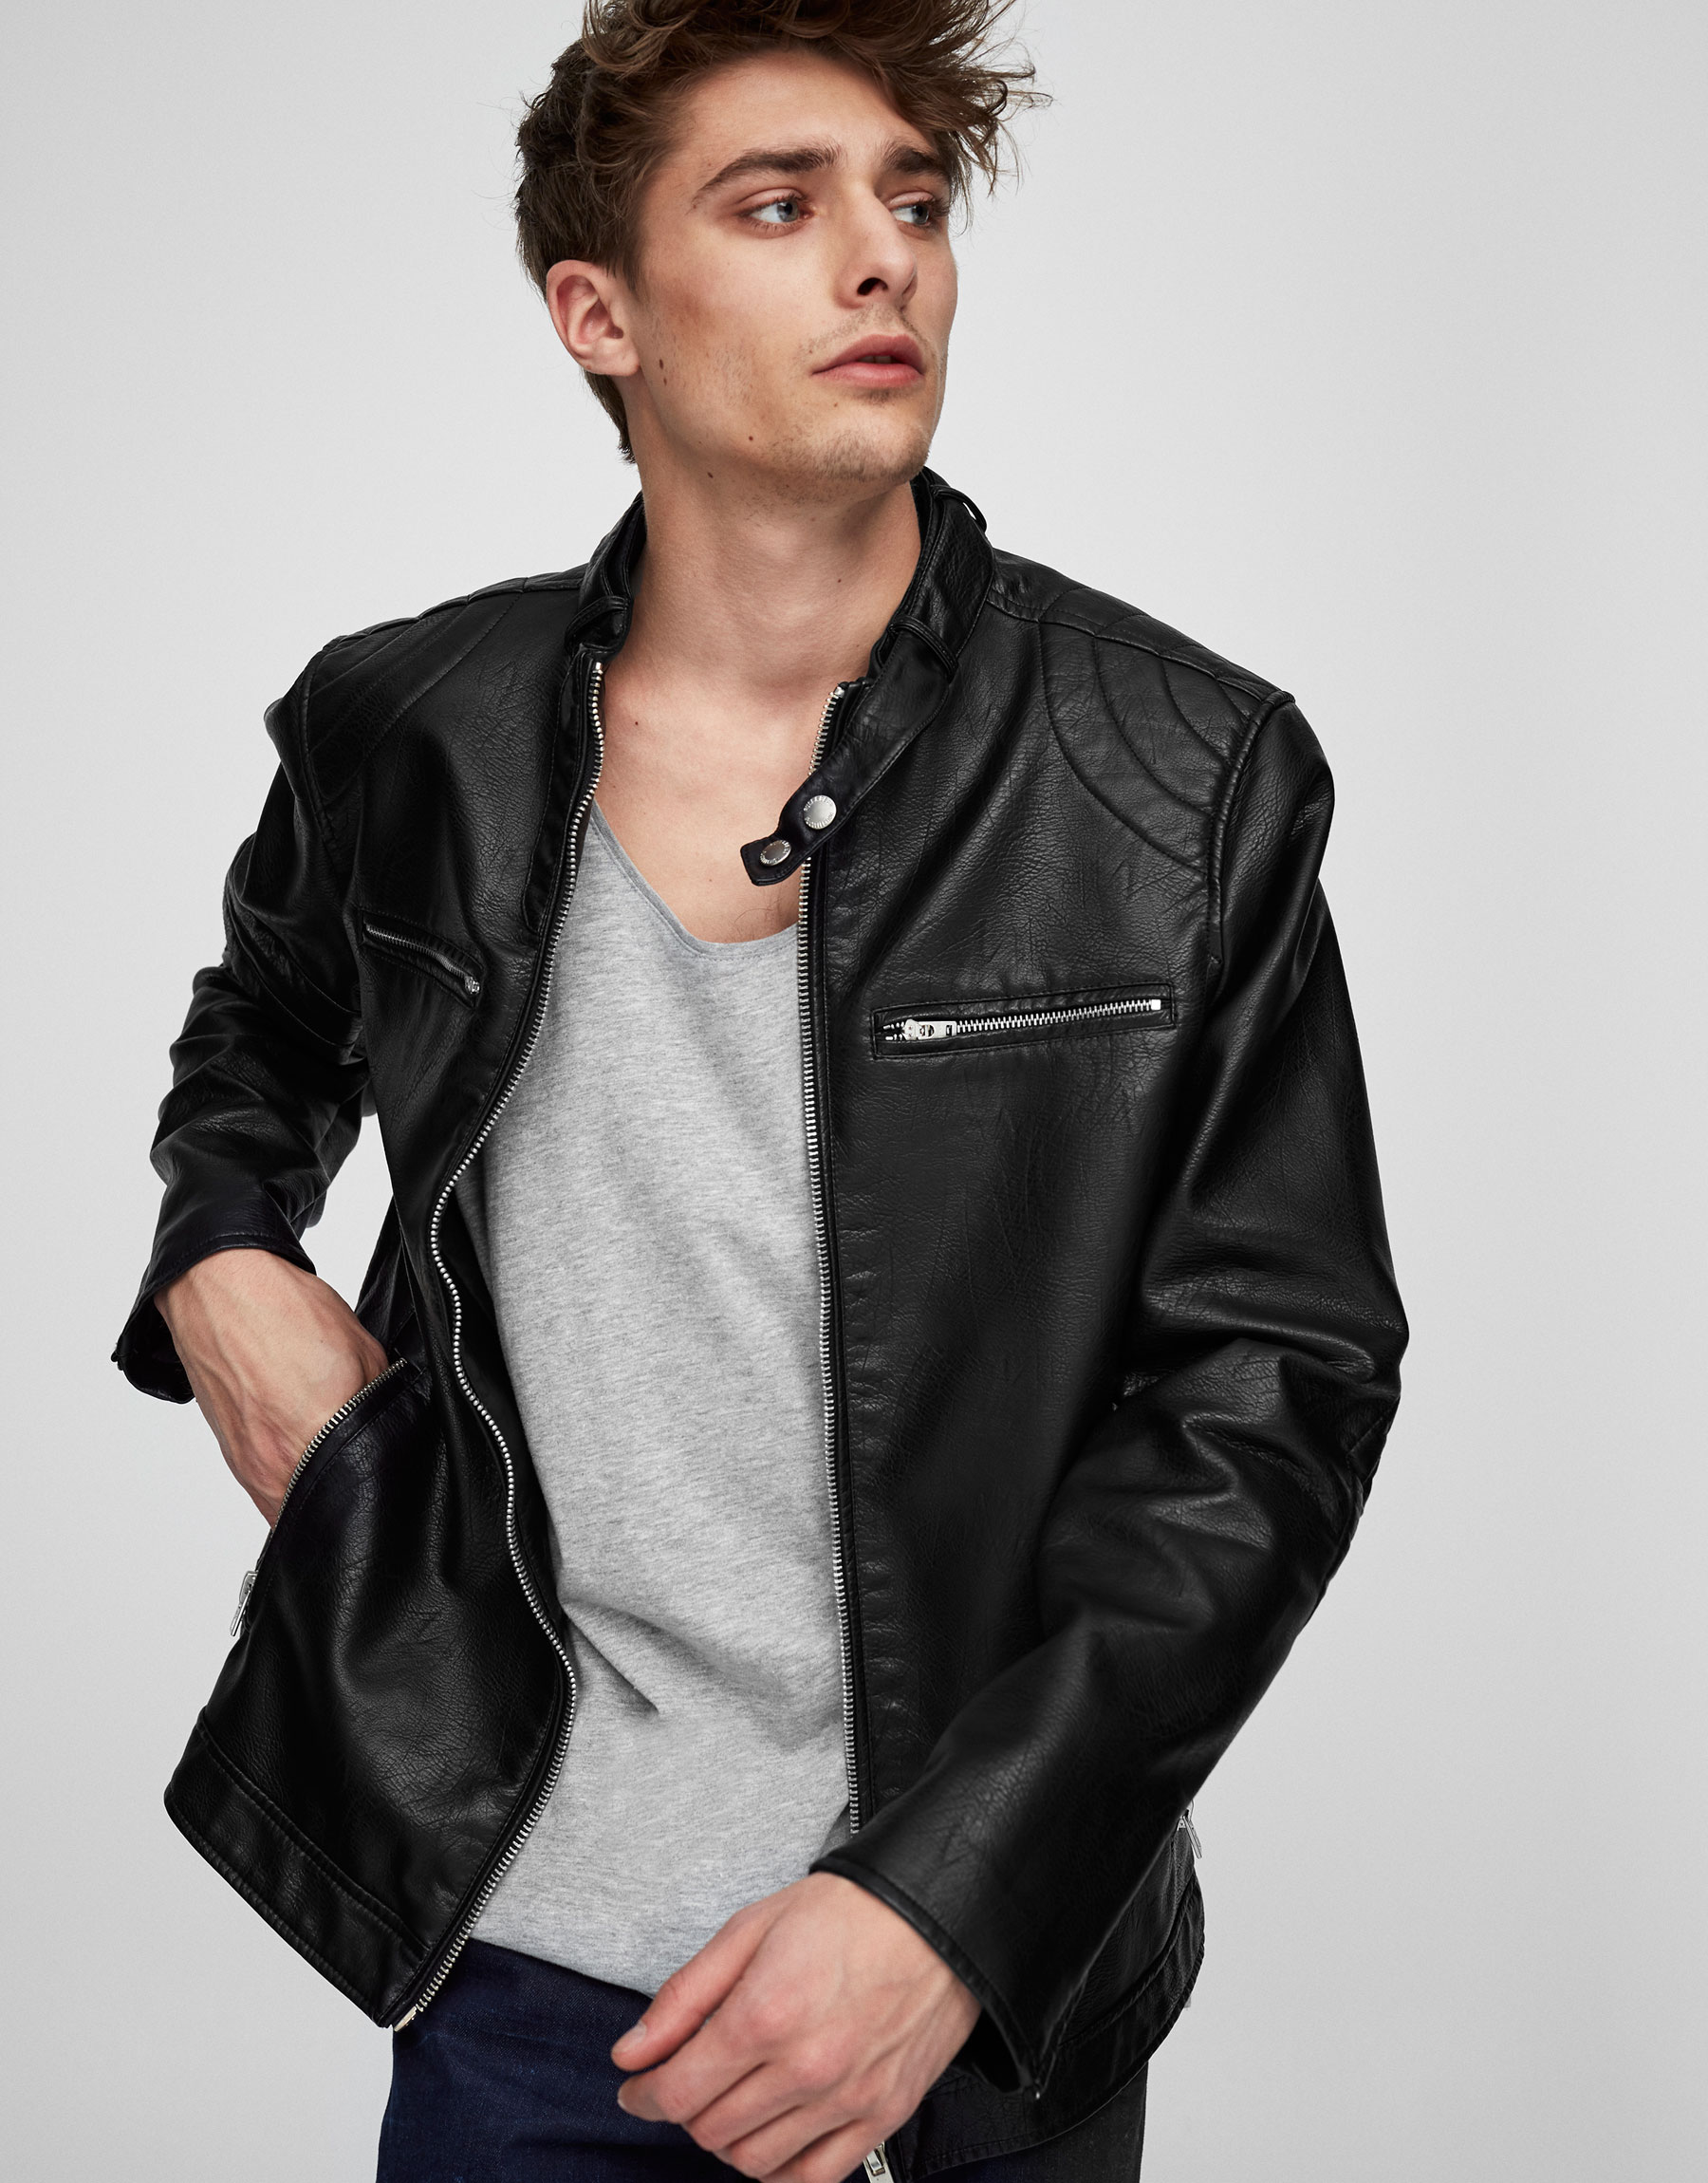 Biker jacket with elbow patches detail